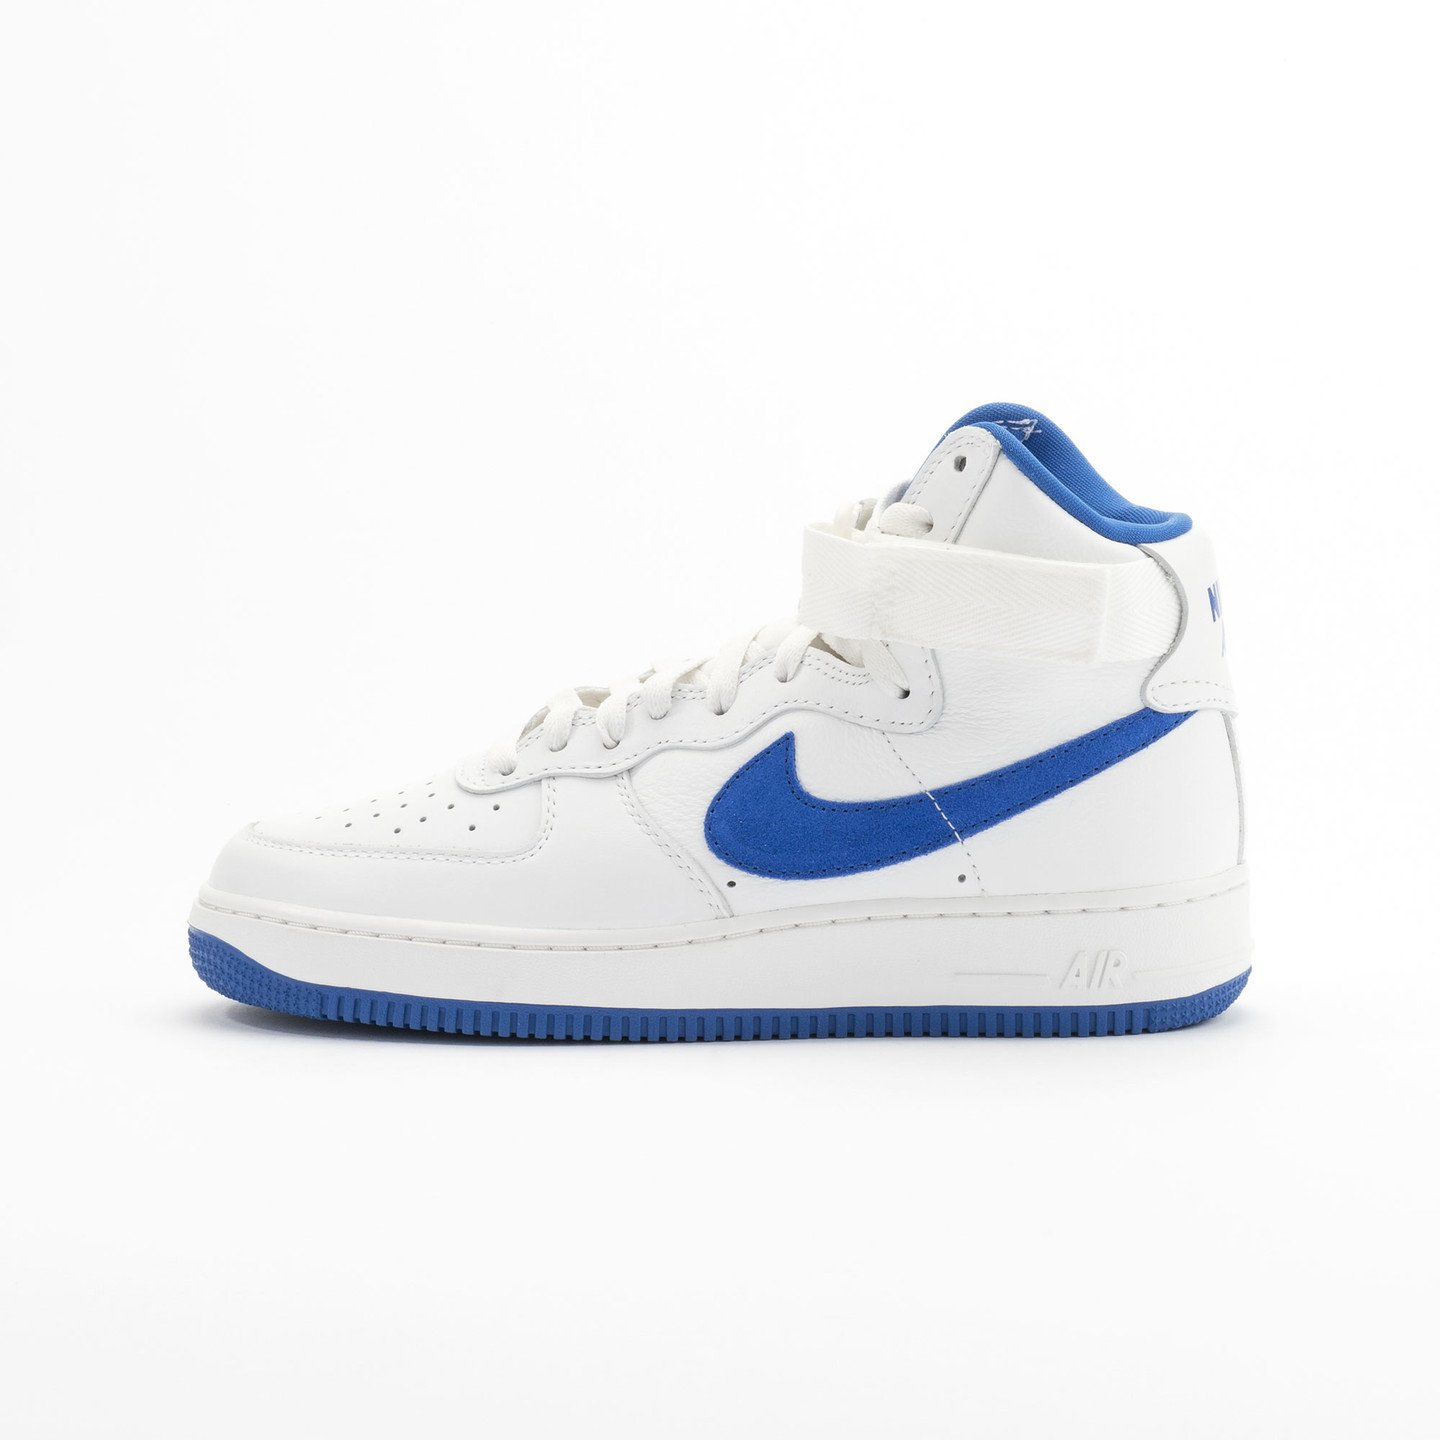 Nike Air Force 1 Hi Retro OG QS Summit White - Game Royal 743546-103-42